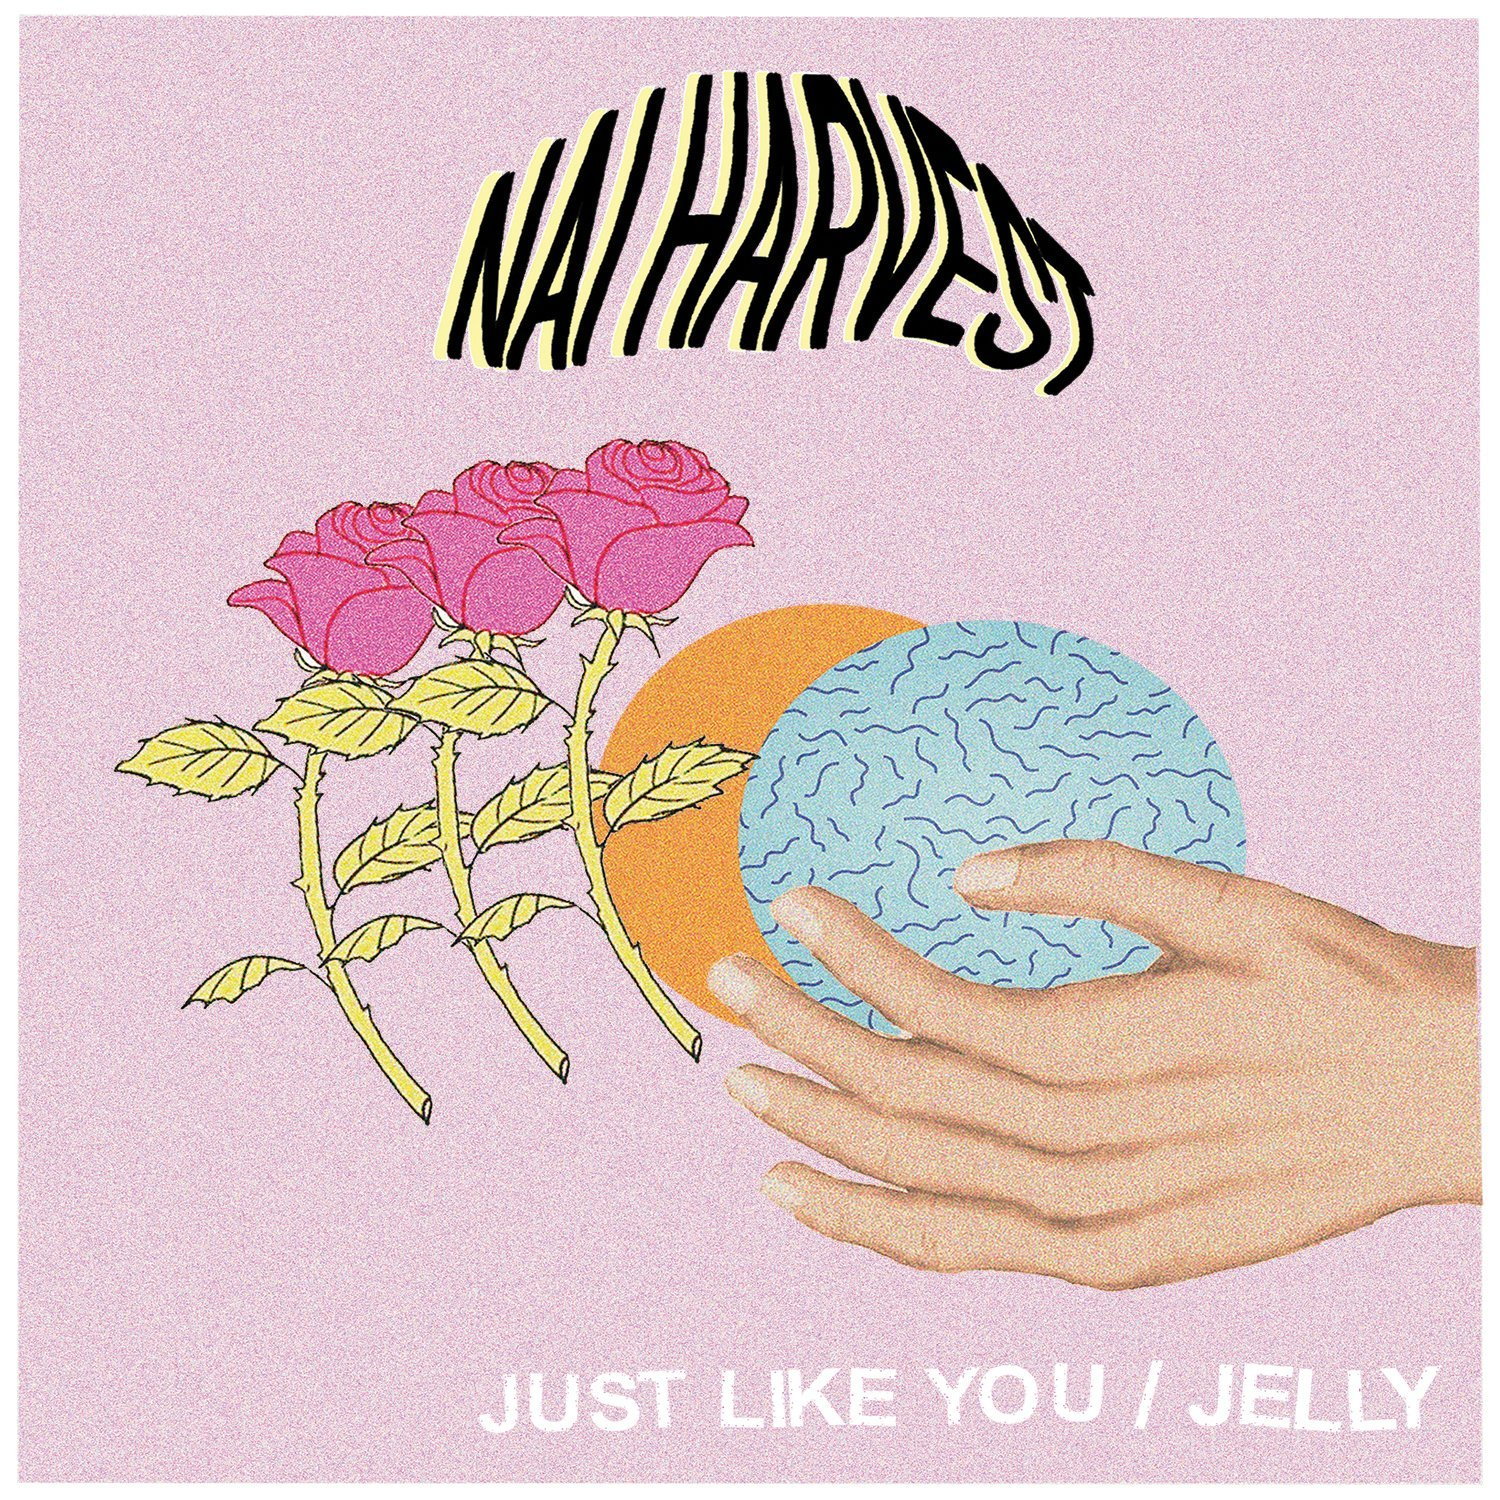 Nai Harvest - Just Like You / Jelly [Vinyl Single]